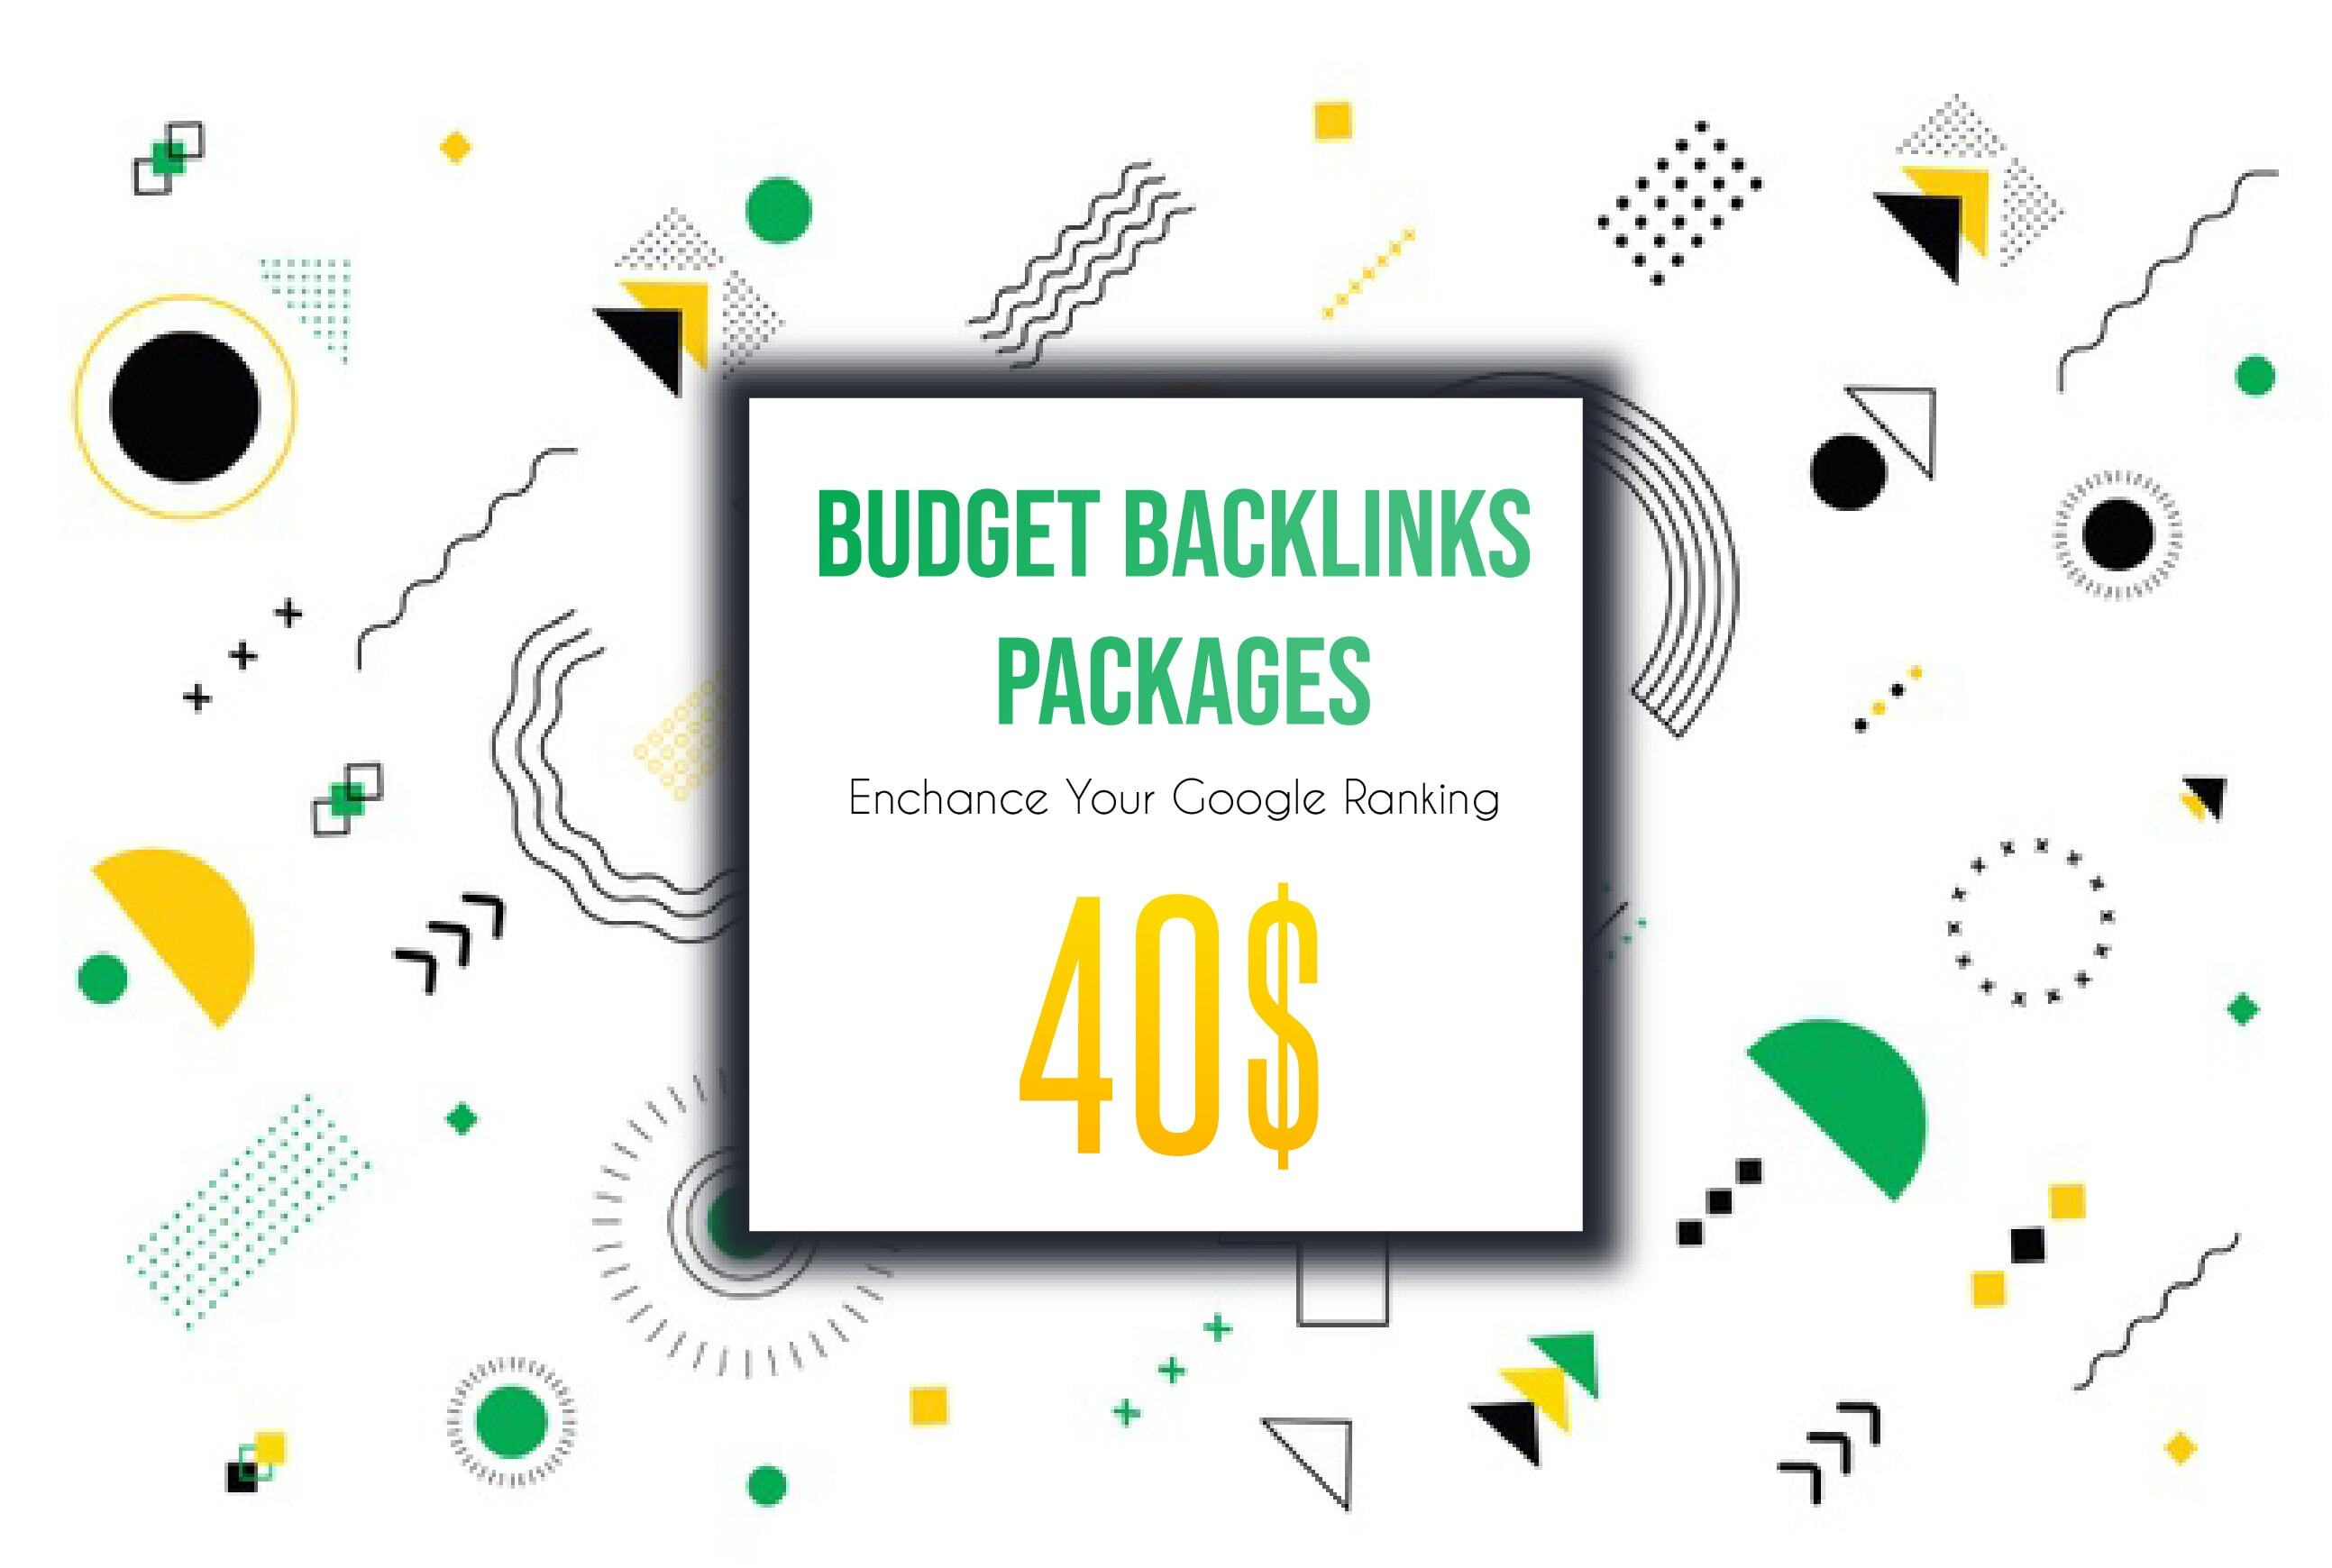 SEO BUDGET Backlinks Link Building Package